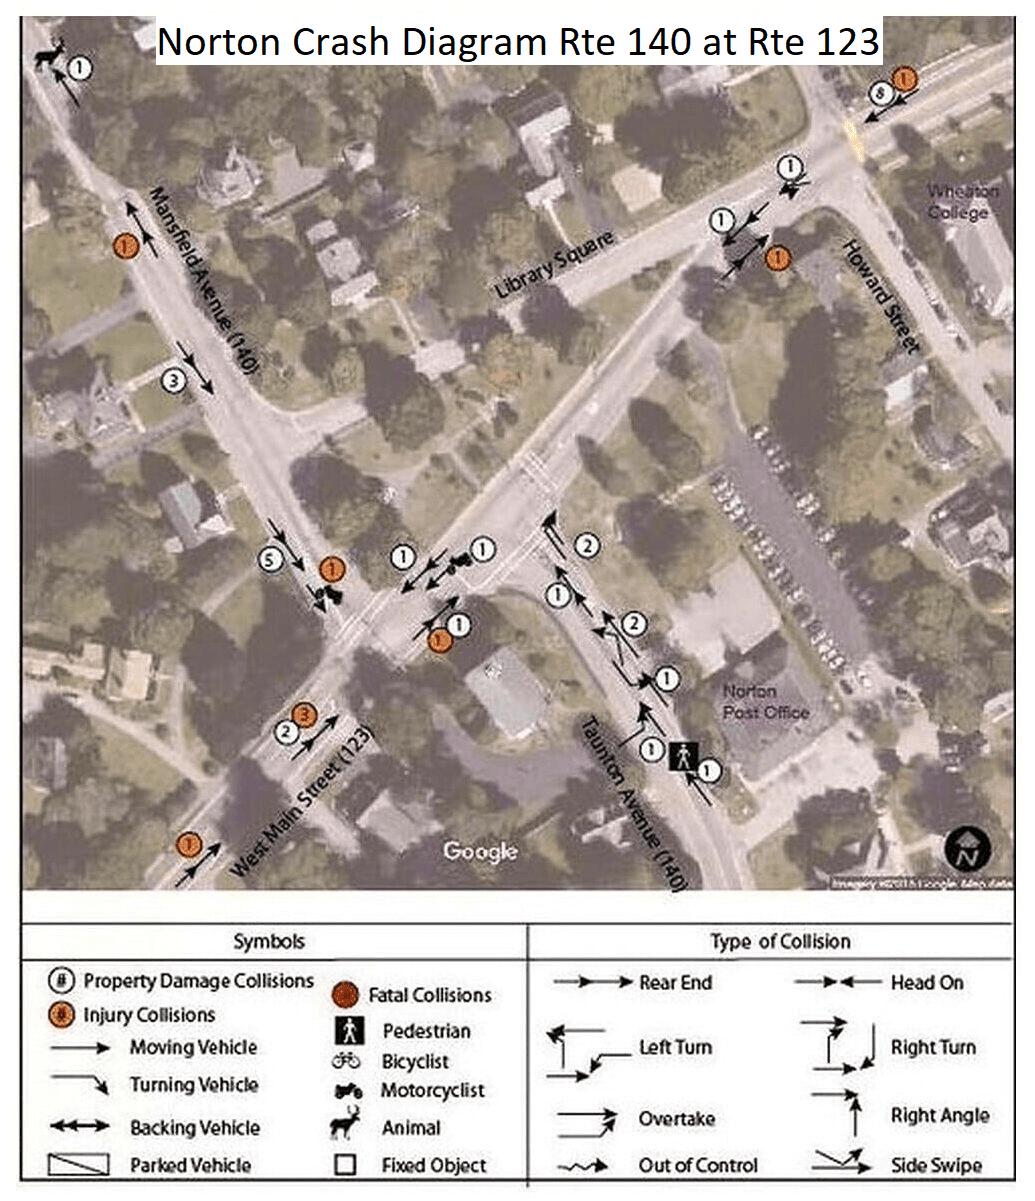 Norton Crash Diagram for Intersection of Route 140 and Route 123